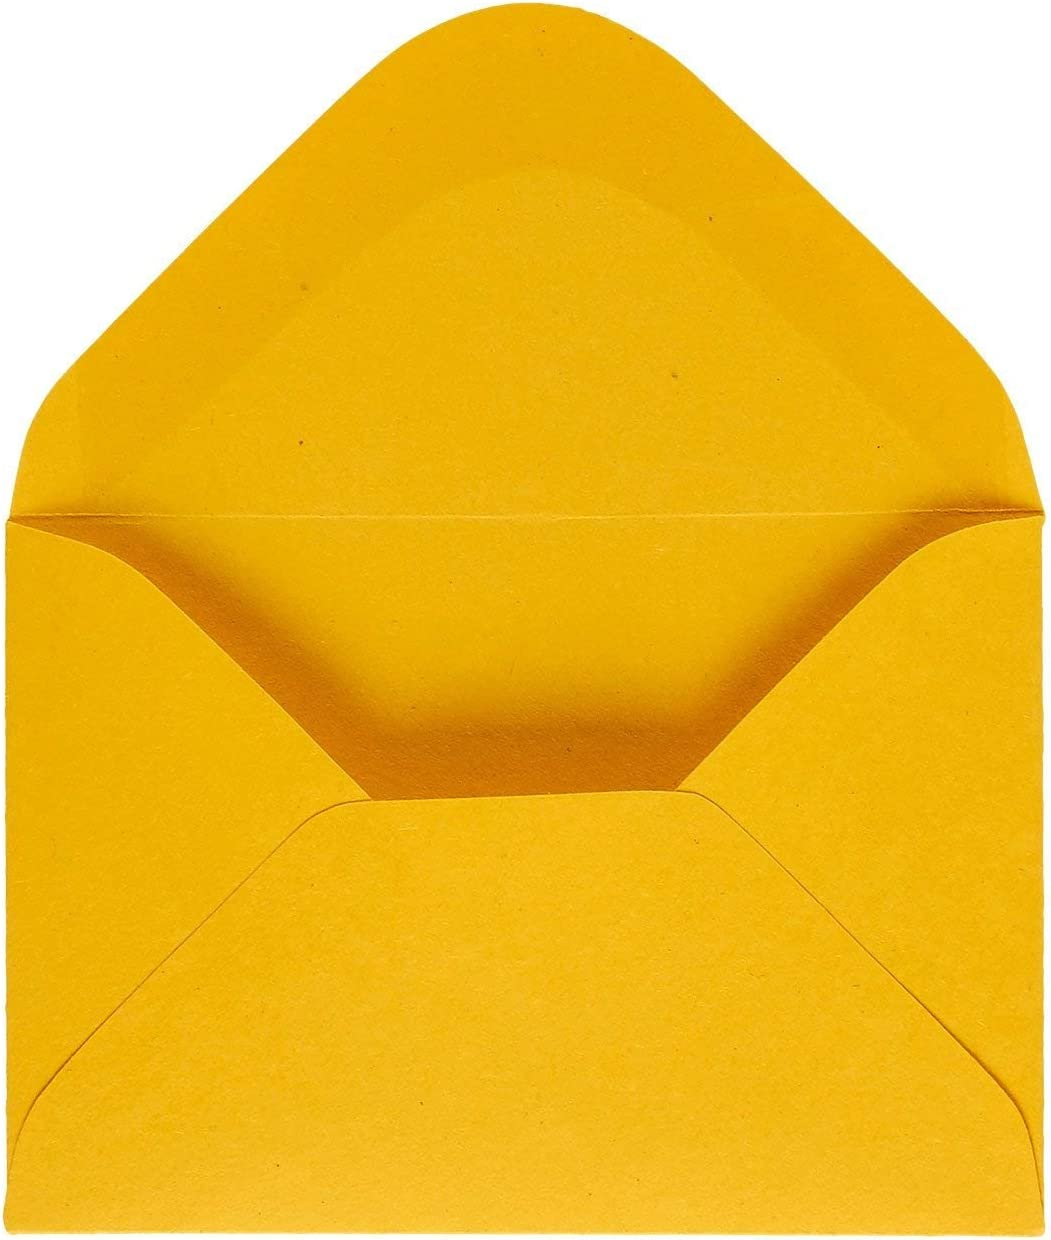 Juvale 100-Count Assorted Color Gift Card Envelopes 4 x 2.7 Inches Mini Tiny Pockets for Note Cards Small Envelope Gummed Business /& Wedding